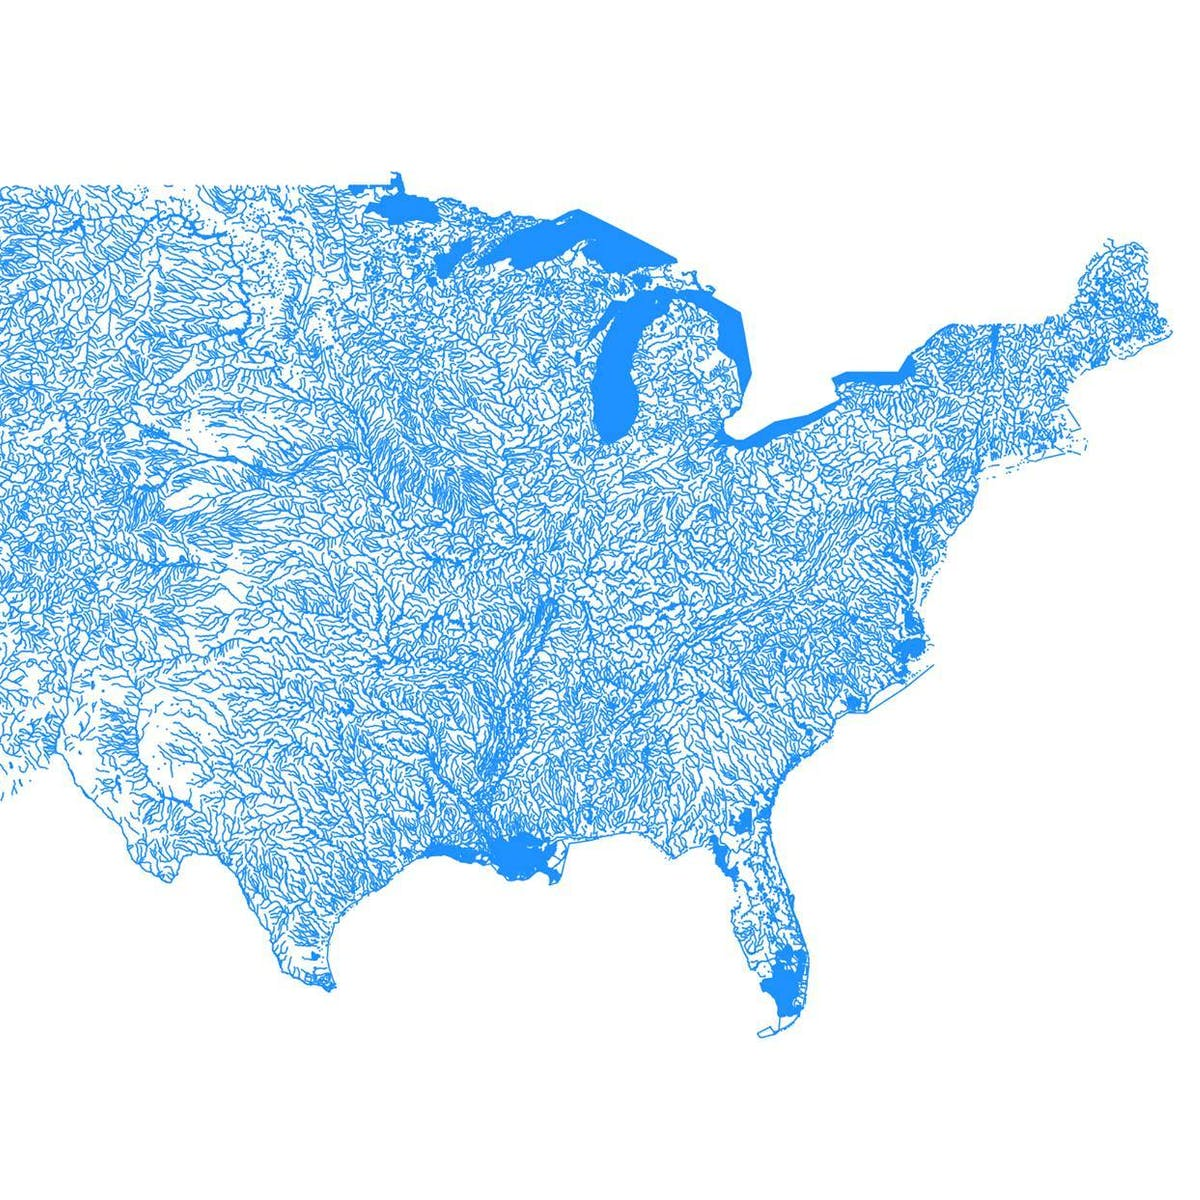 Map Uses Geological Survey Data to Show Every Body of Water